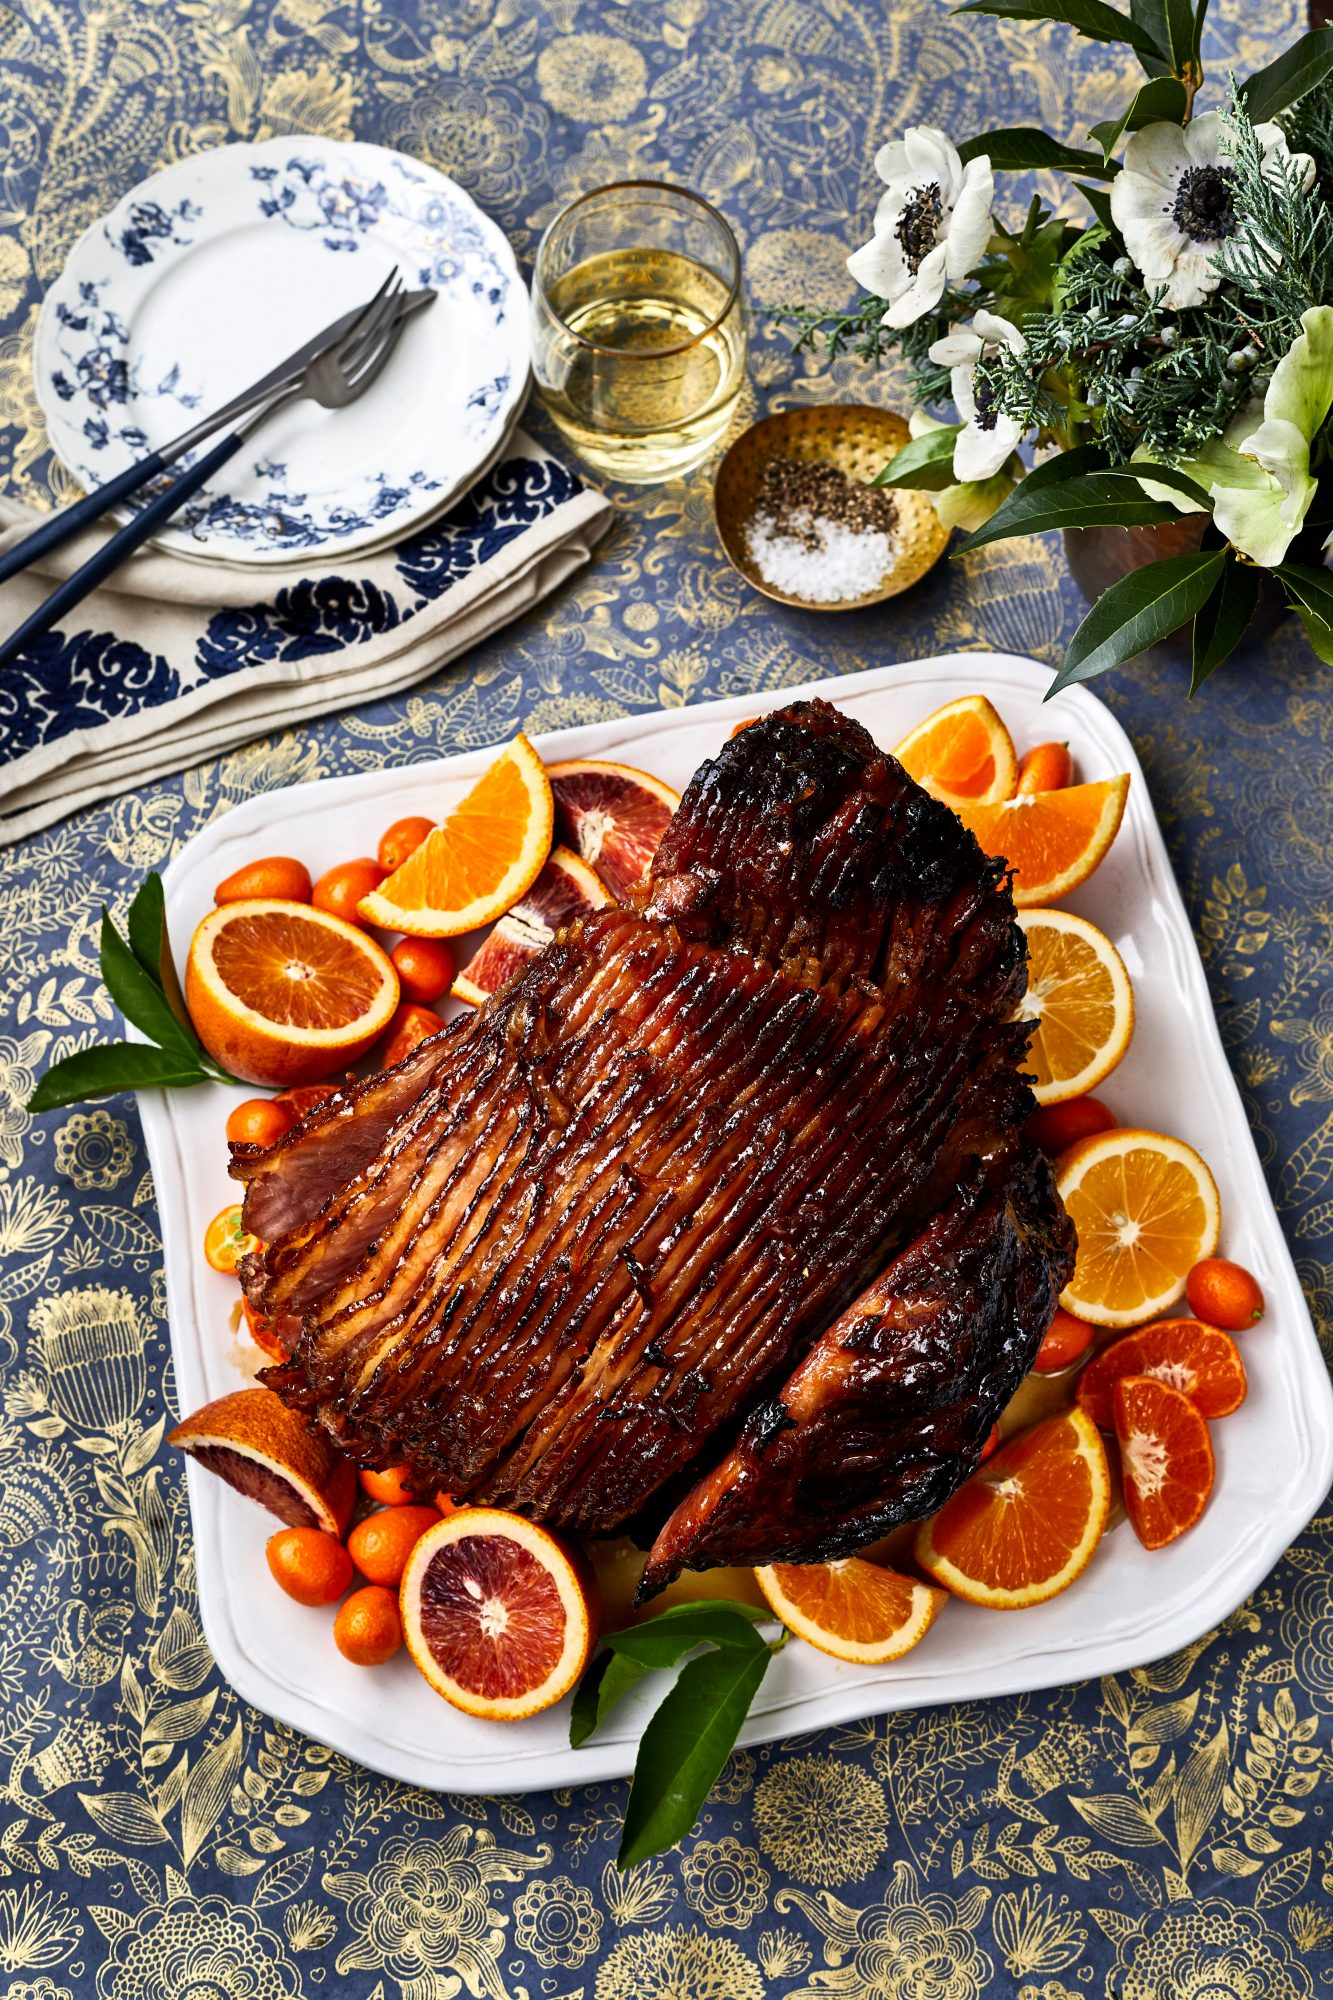 Baked Ham with Brown Sugar-Citrus Glaze